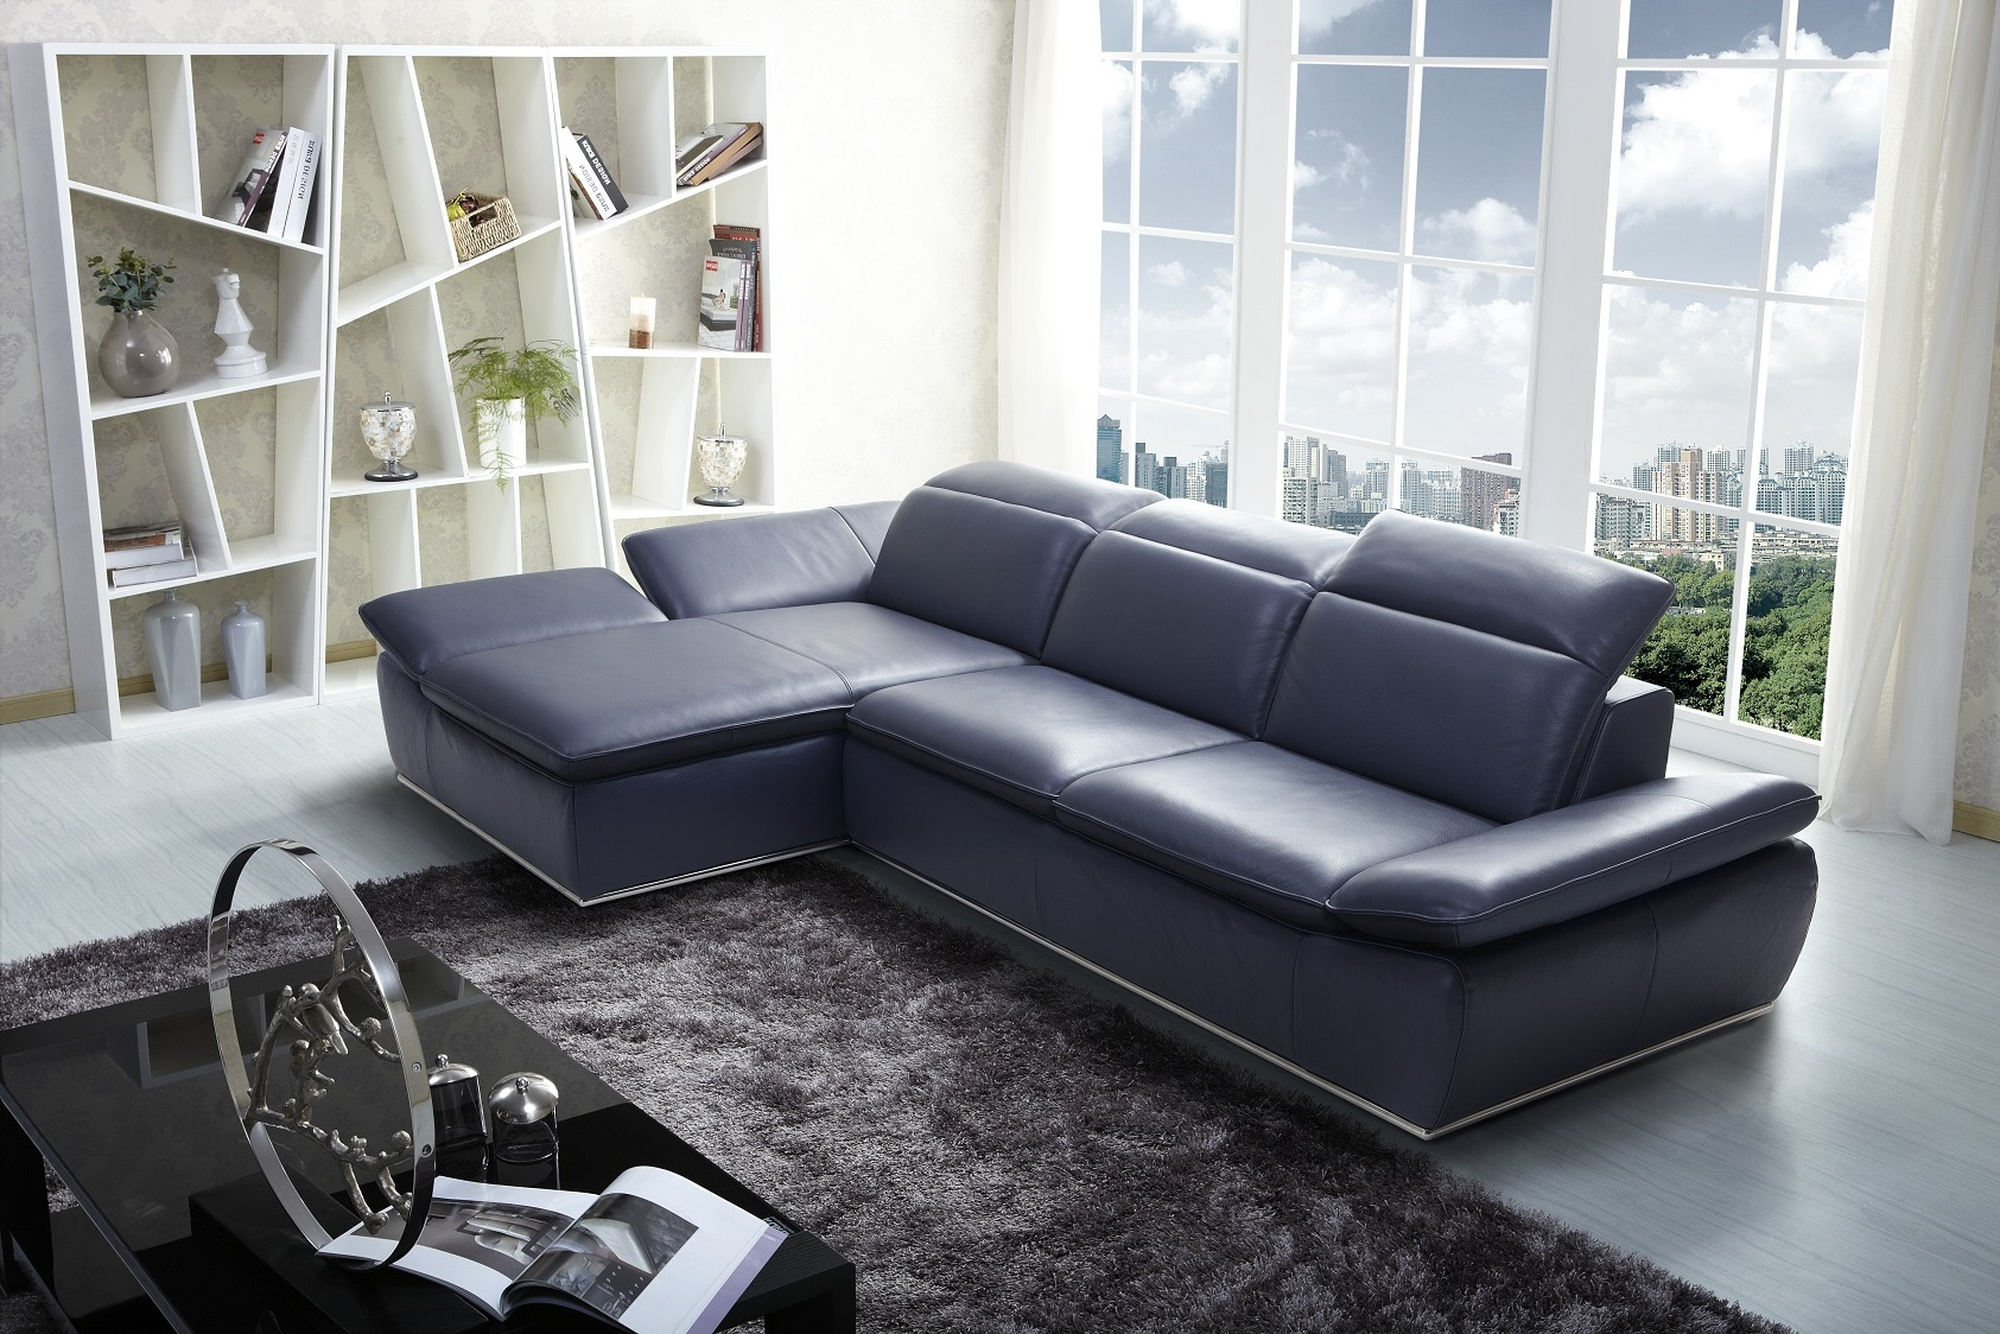 JampM Furniture 1799 Italian Modern Leather Sectional LAF